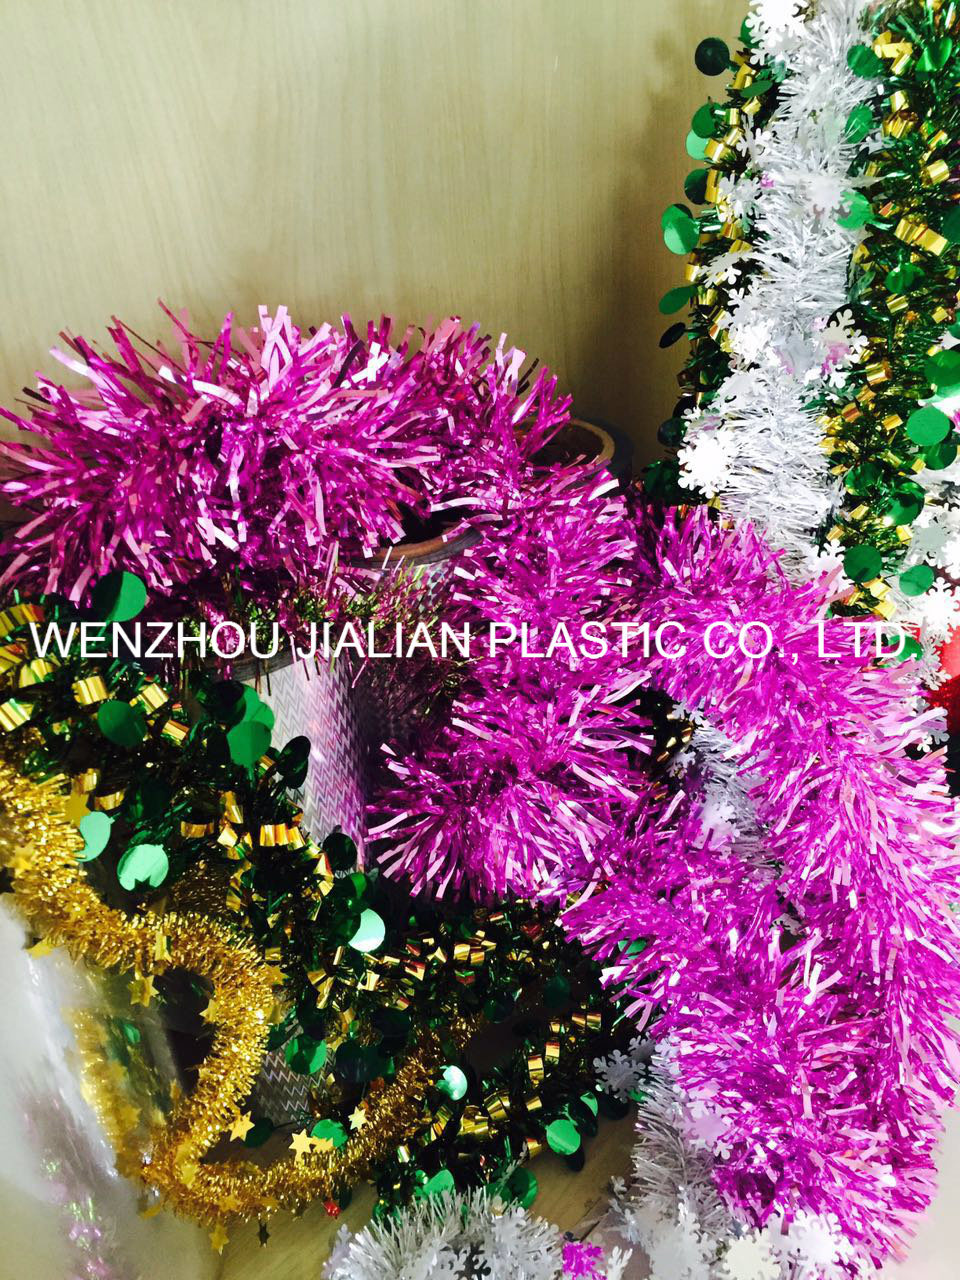 Rigid Metalized PVC Film/Sheet of Both Sides Purple Color for Garland Decorations